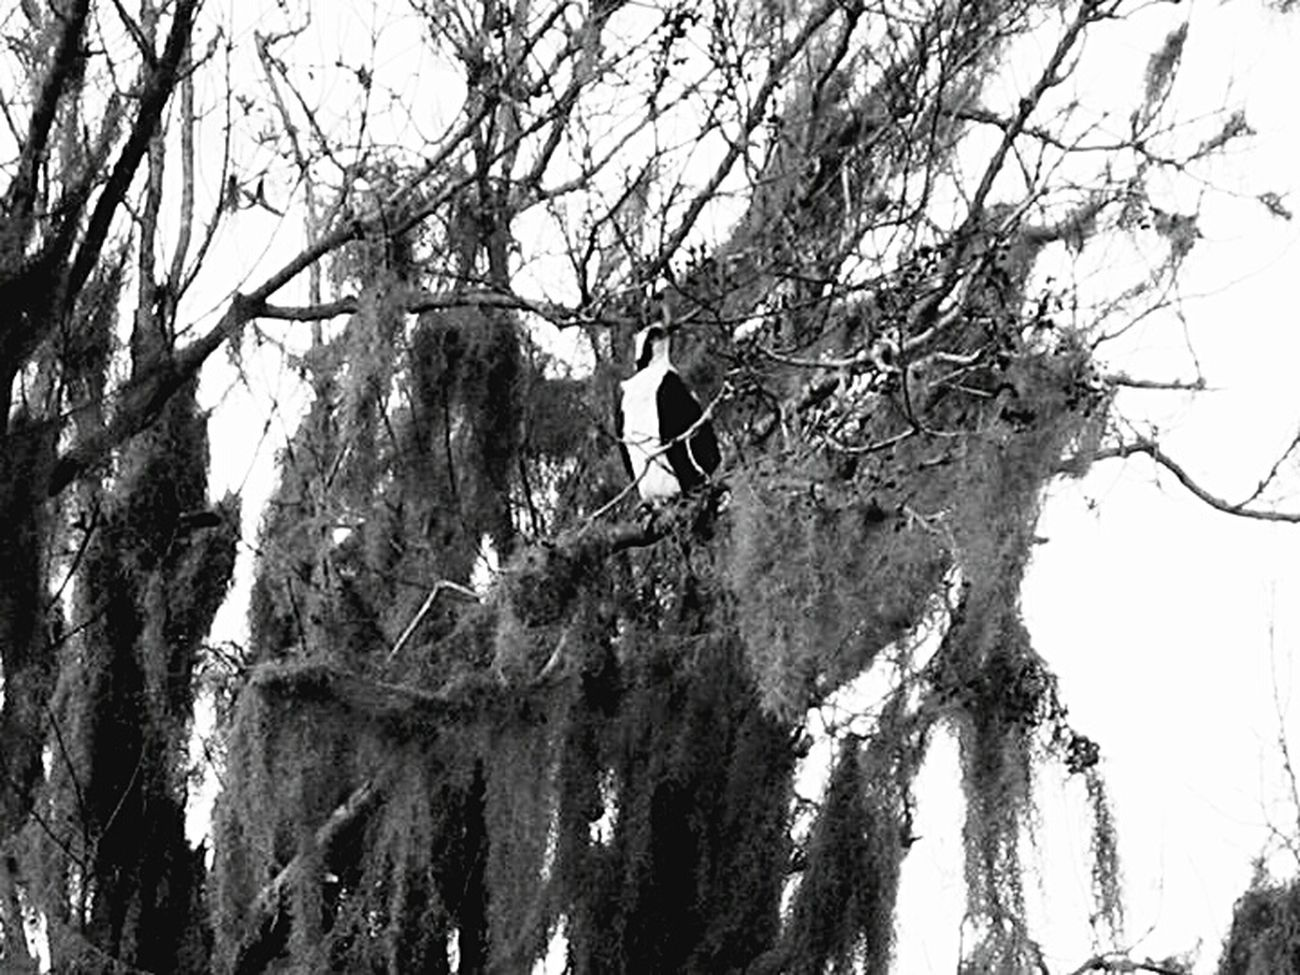 Spanish Moss Travel Florida Kissimmee Scenery Shots Black And White Trees Texture